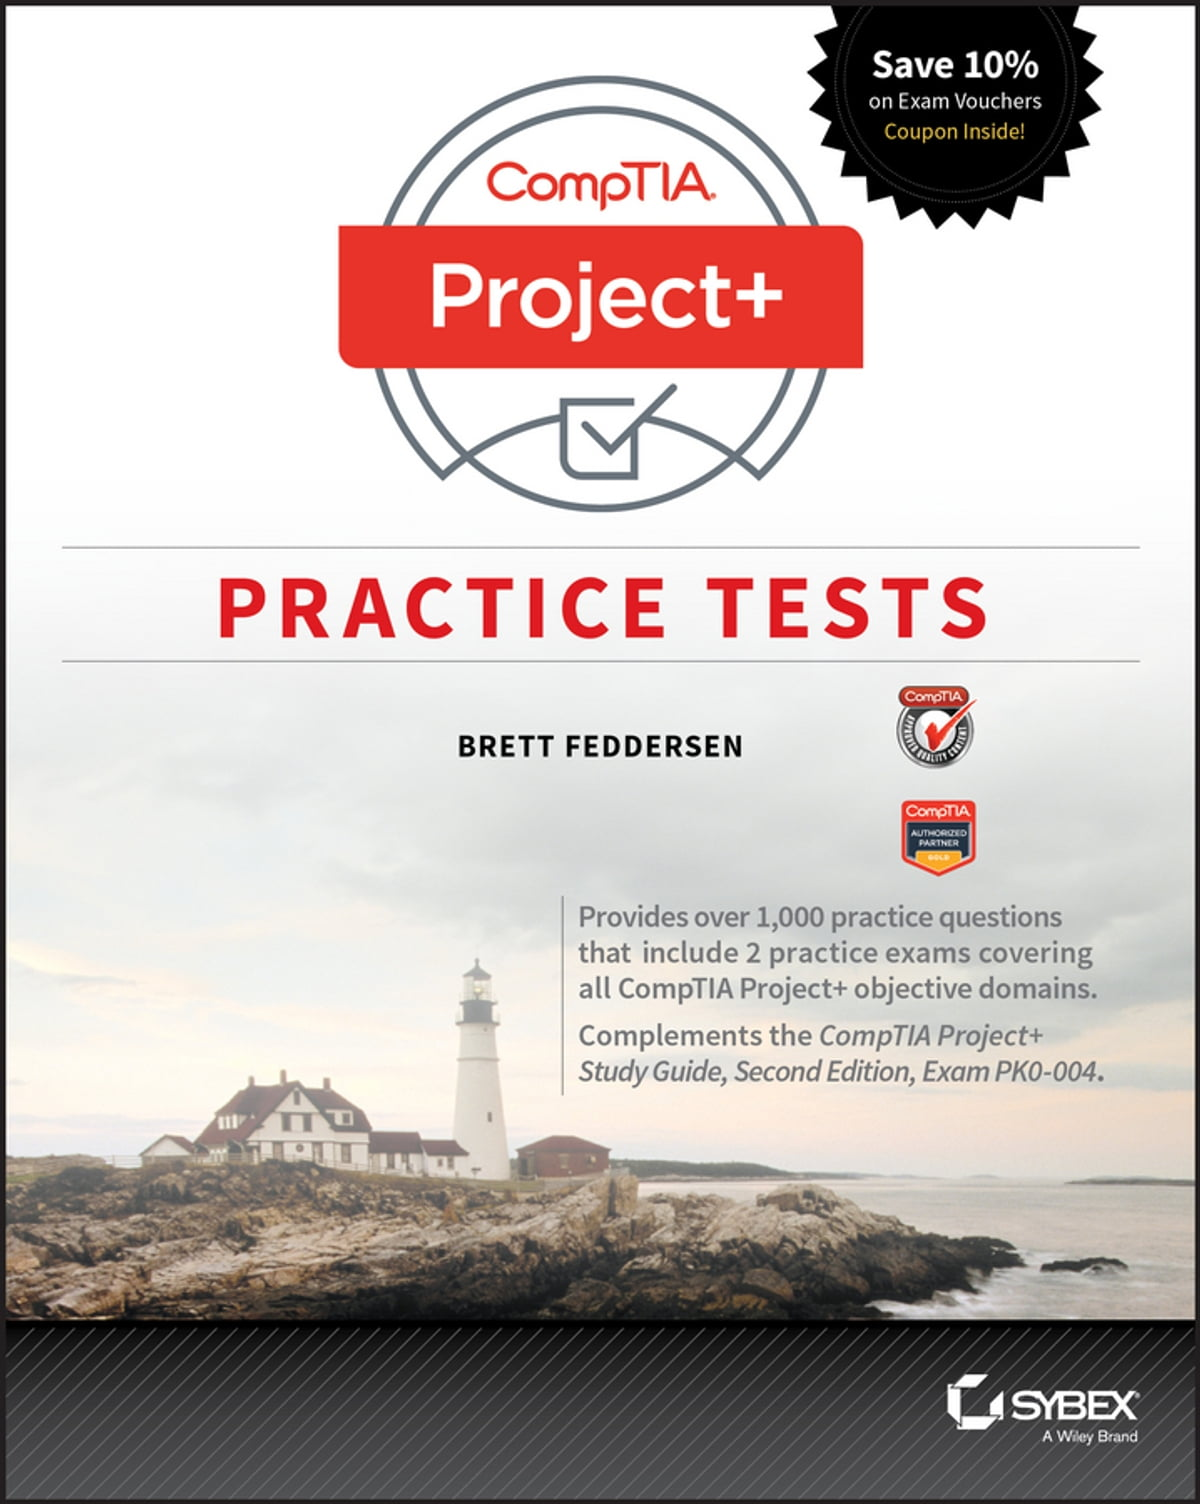 Comptia project practice tests ebook by brett feddersen comptia project practice tests ebook by brett feddersen 9781119363378 rakuten kobo xflitez Image collections